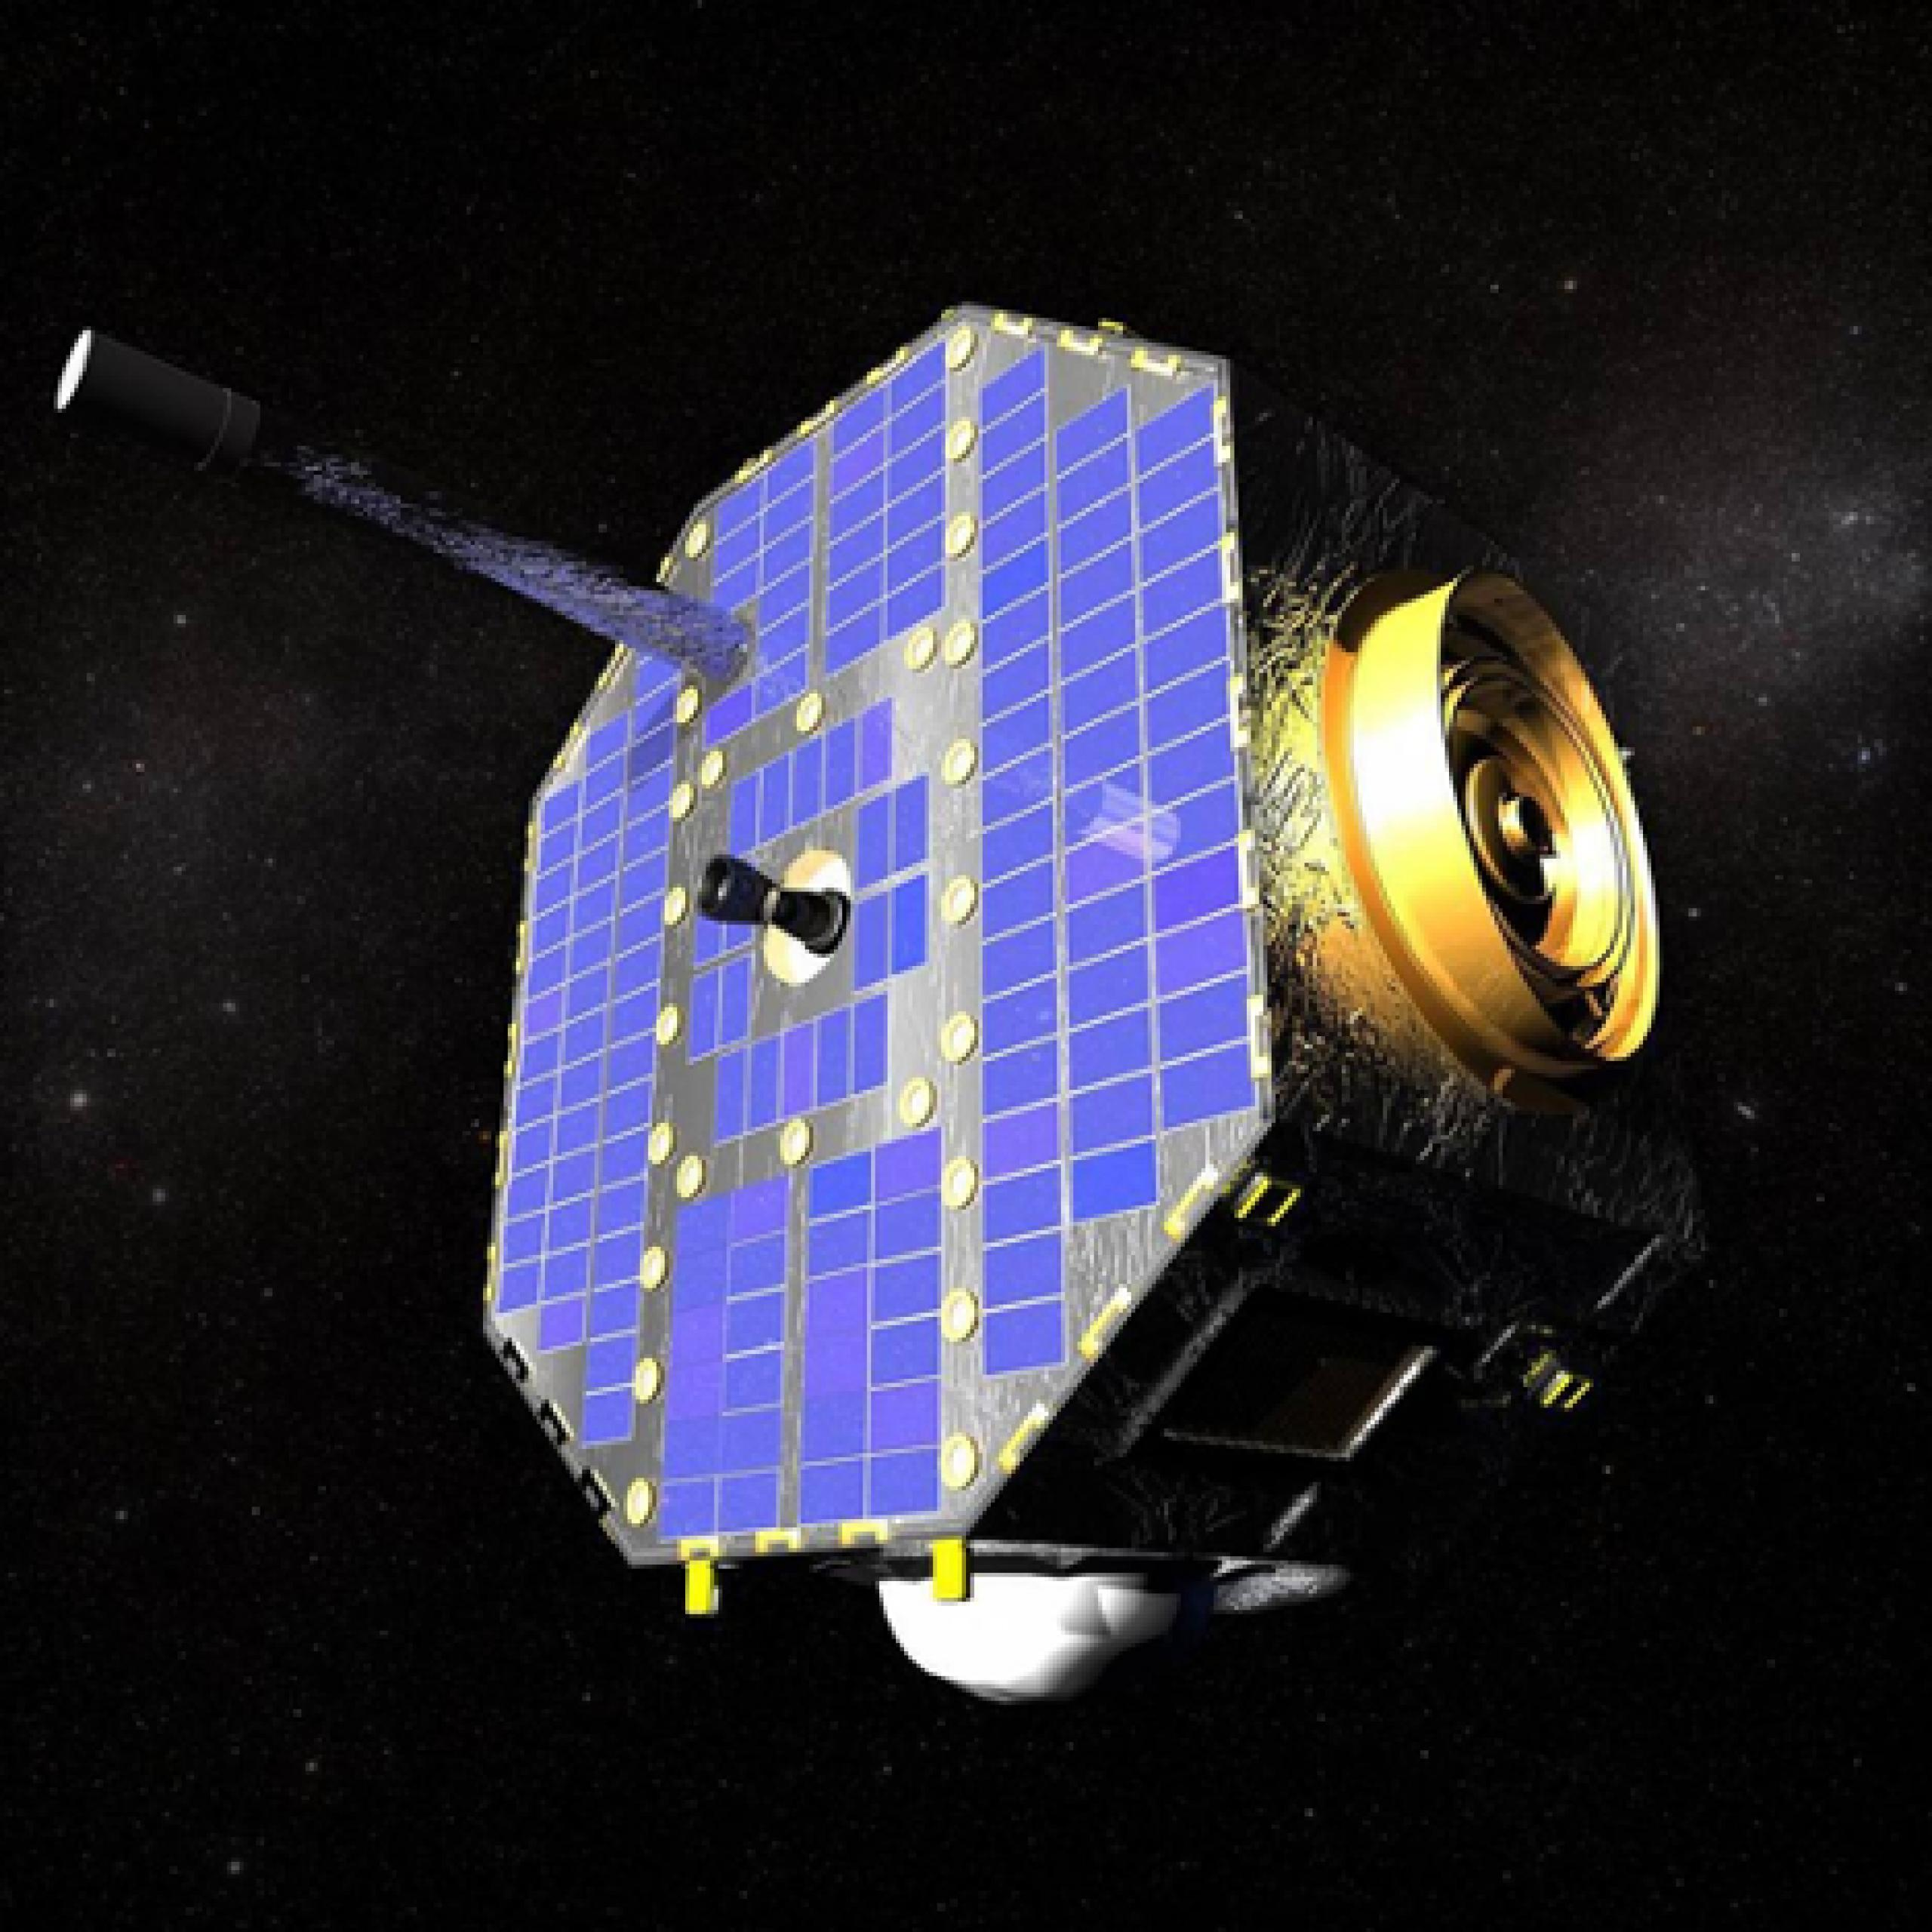 Artist concept of satellite with blue panel against a black background